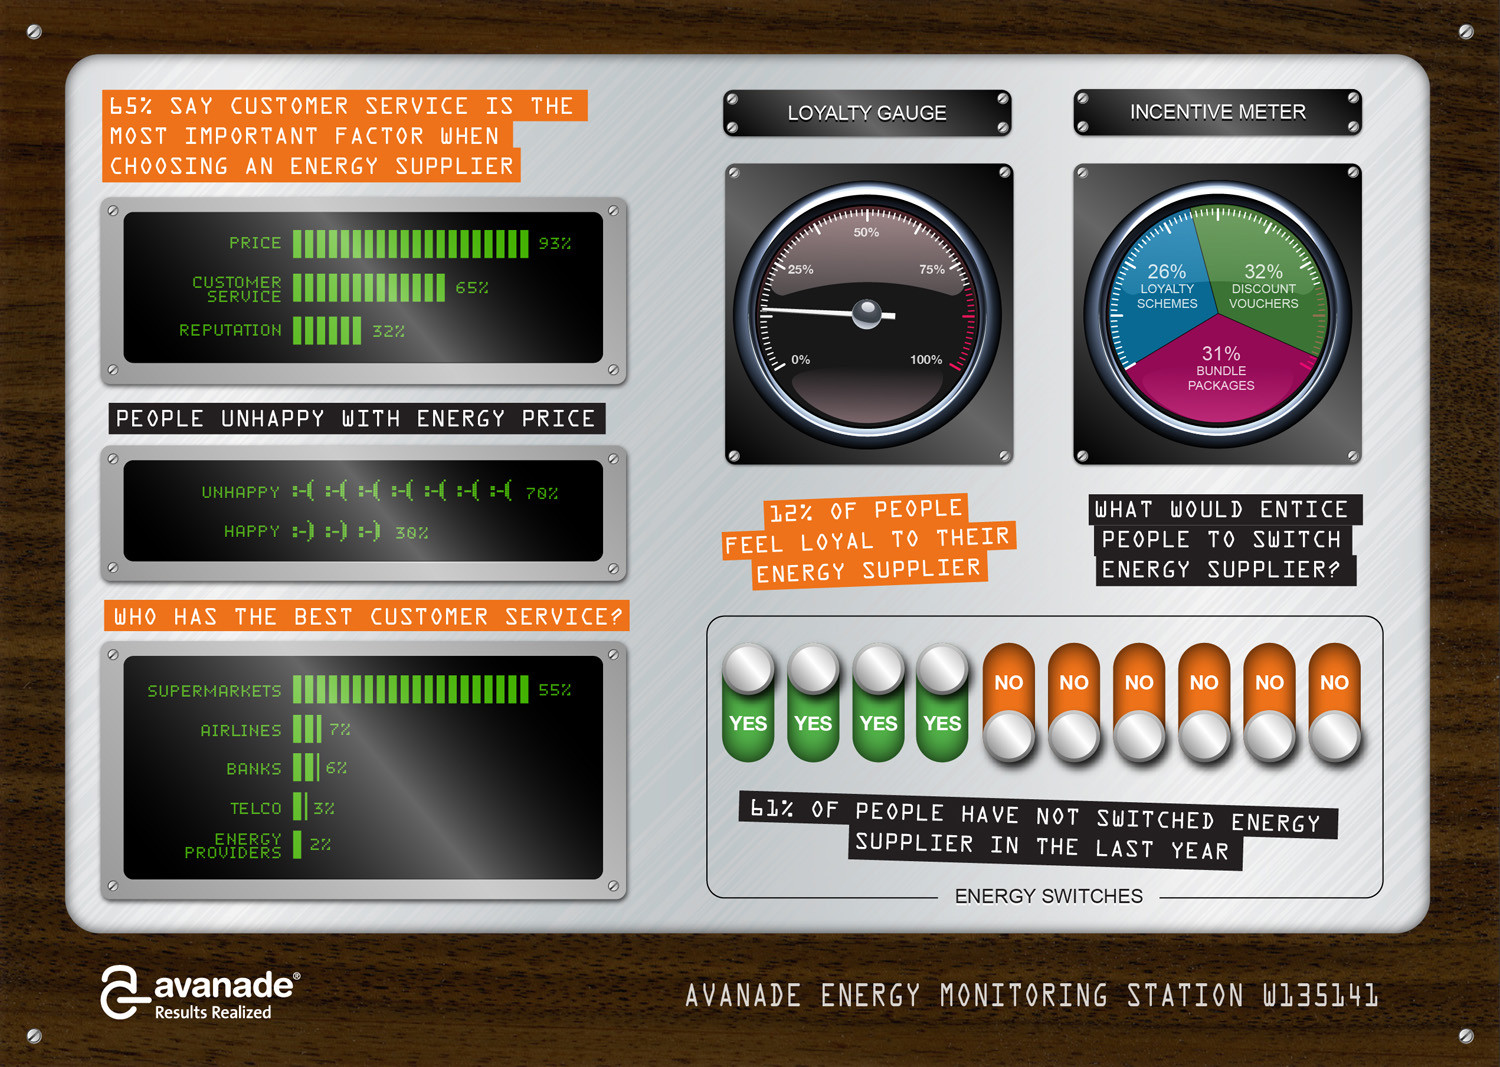 Avanade Energy Monitoring Station Infographic